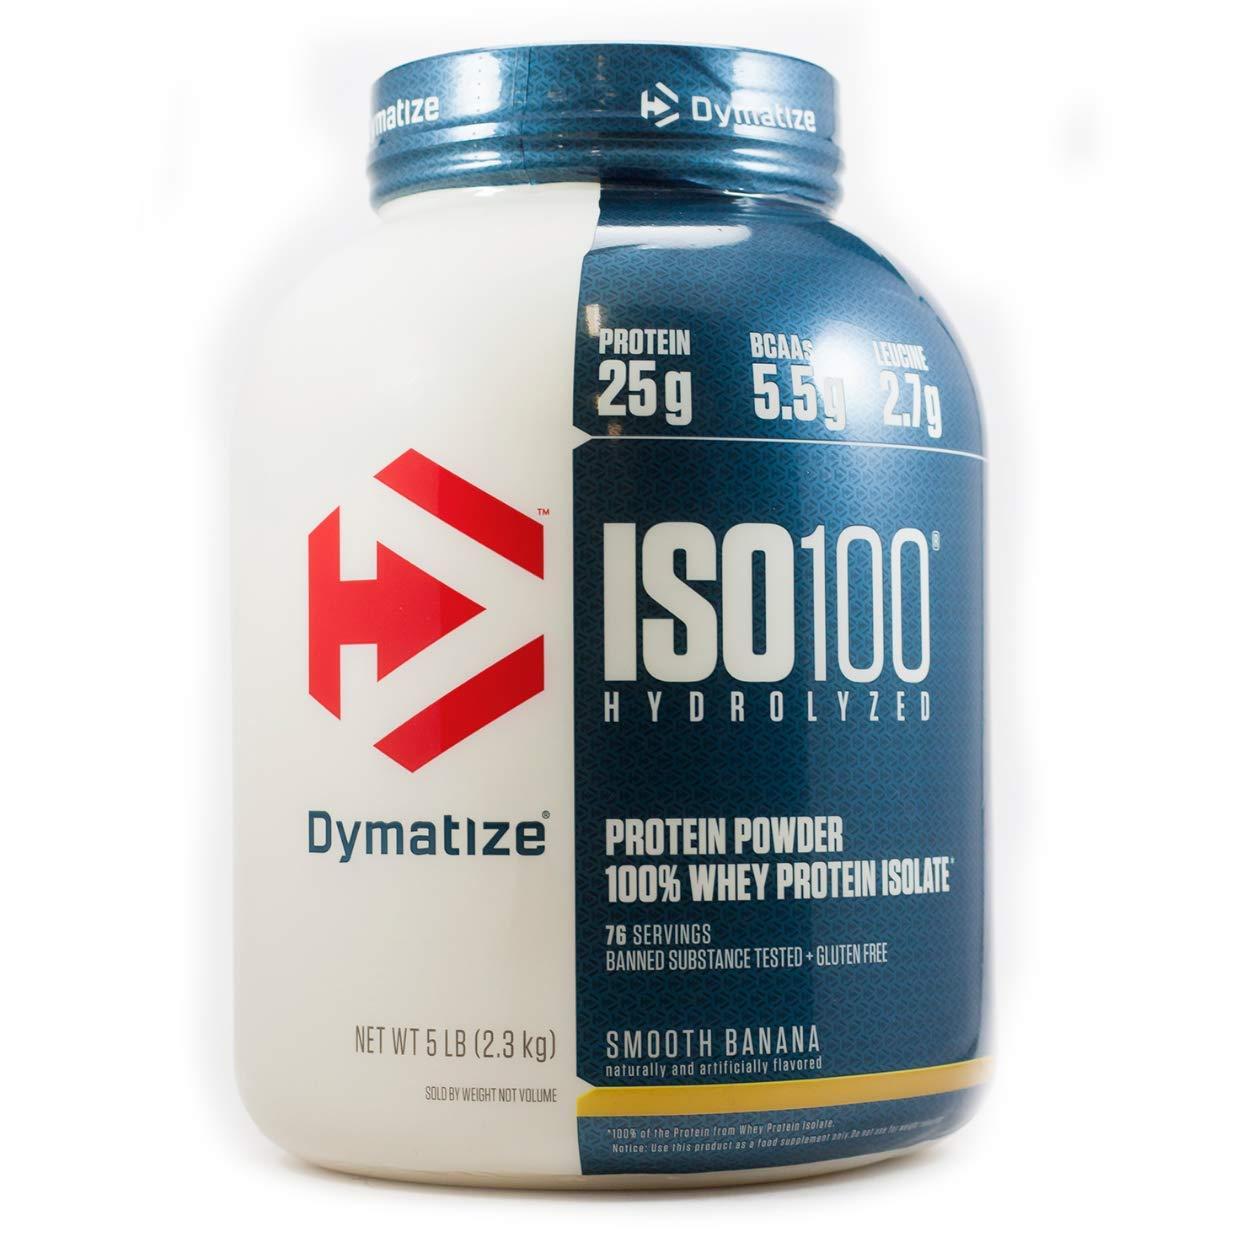 Dymatize ISO 100 Whey Protein Powder with 25g of Hydrolyzed 100% Whey Isolate, Gluten Free, Fast Digesting, Smooth Banana, 5 Pound by Dymatize